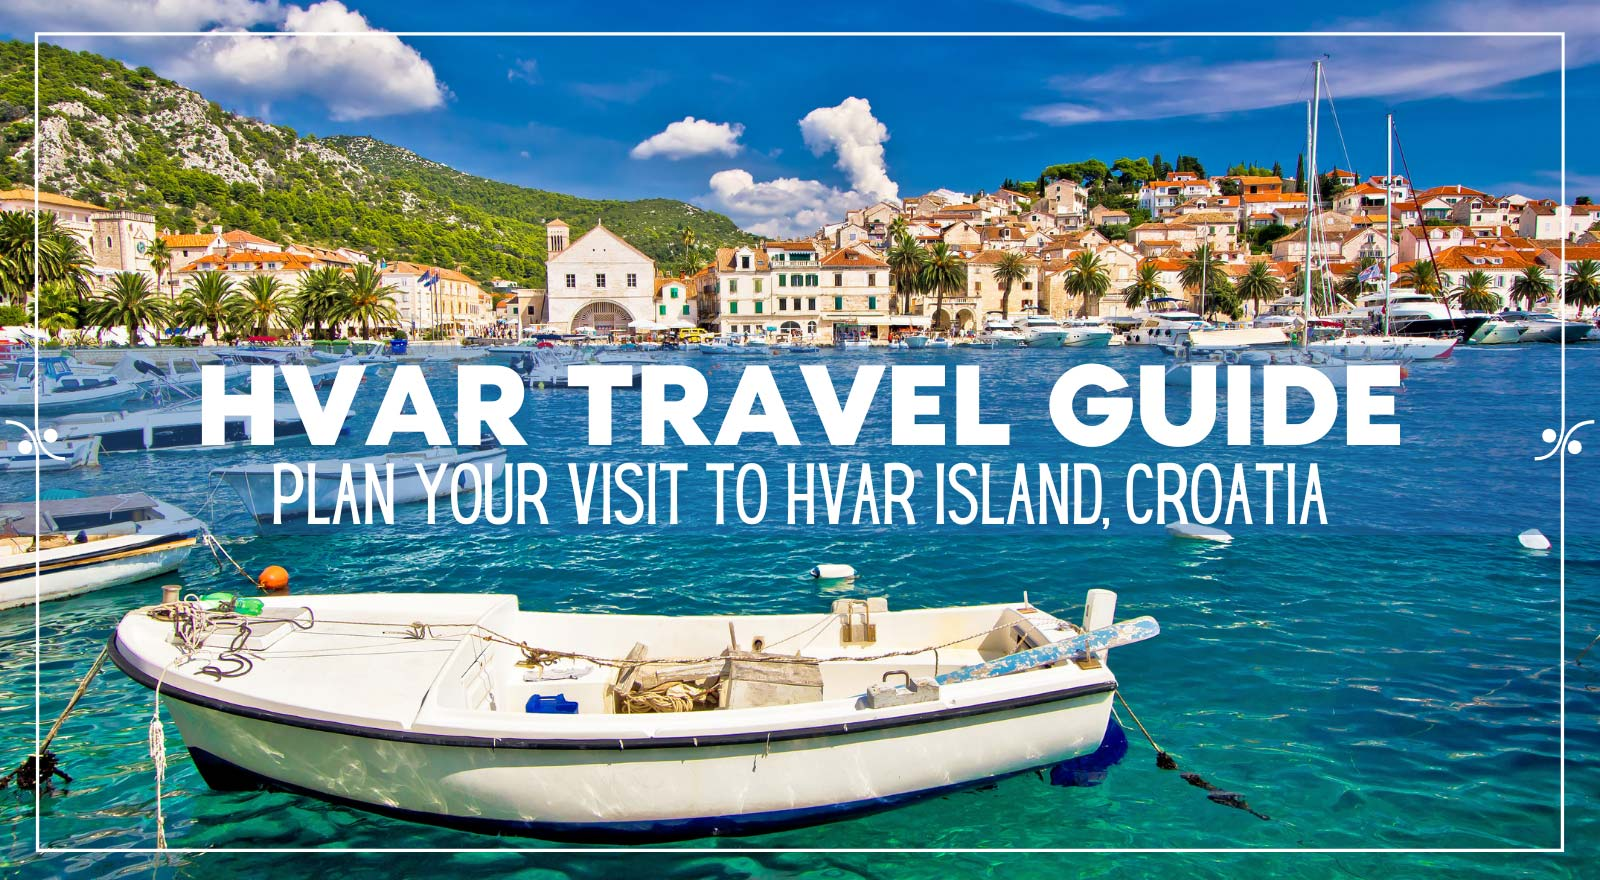 A complete travel guide to Hvar Island Croatia, Illustration